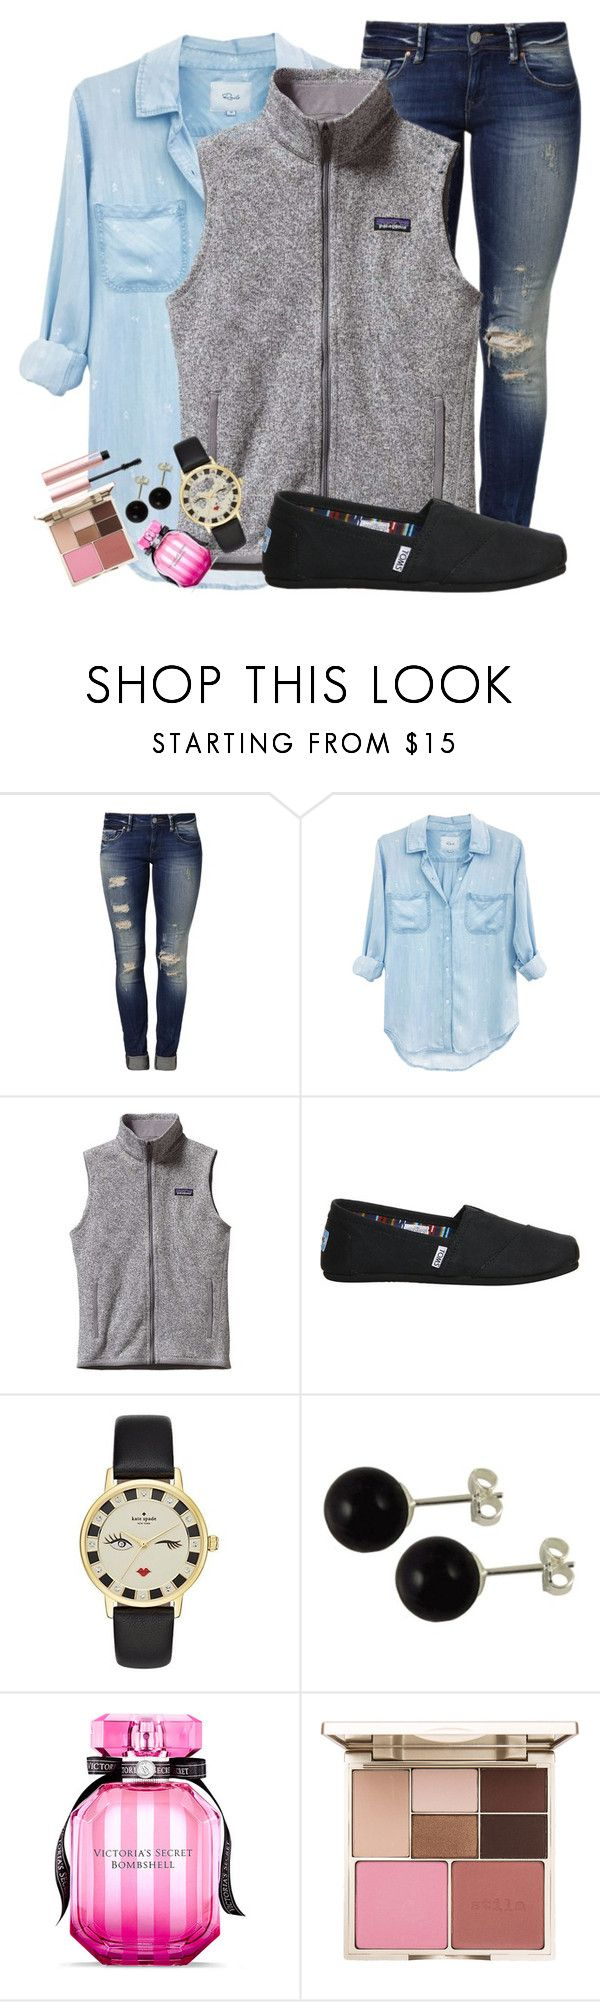 """BRRRRR......"" by kenzie75 on Polyvore featuring Mavi, Rails, Patagonia, TOMS, Kate Spade, Victoria's Secret, Stila and Too Faced Cosmetics"